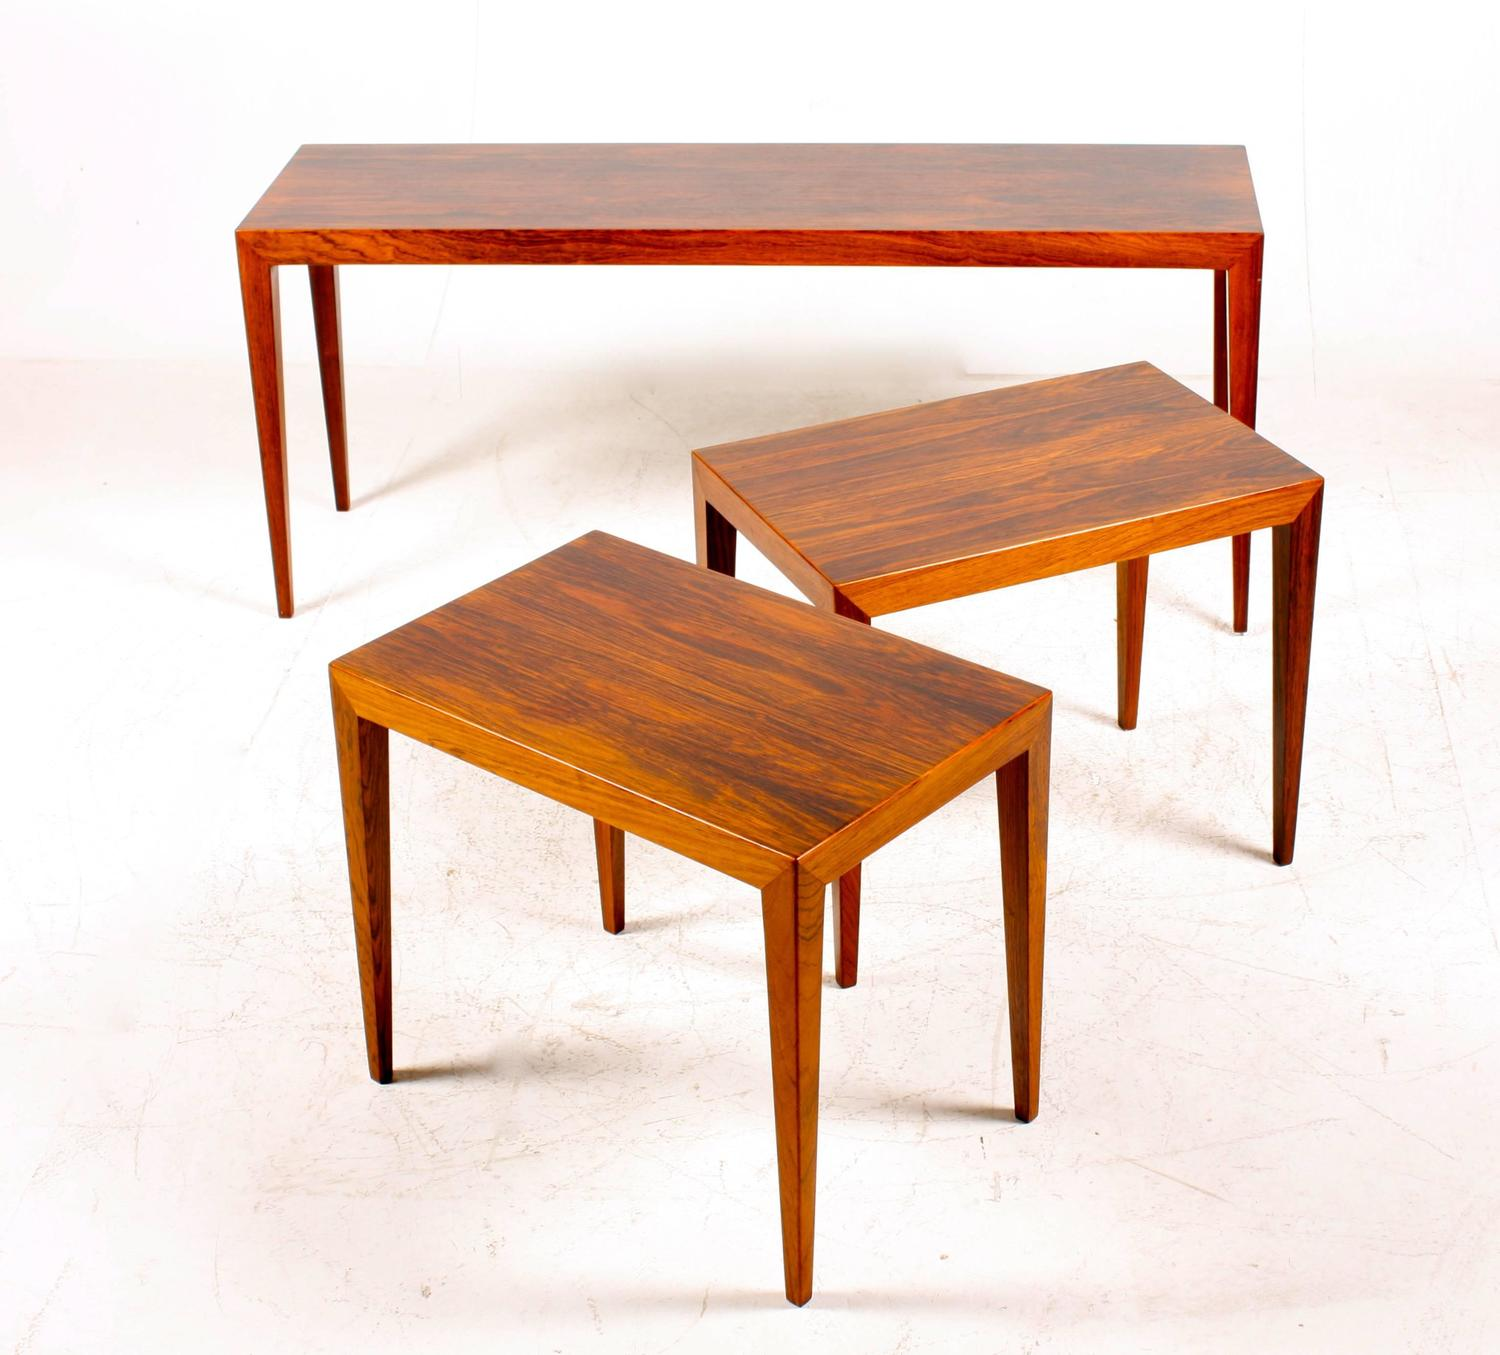 Superb img of Nest of Tables by Haslev For Sale at 1stdibs with #BC3905 color and 1500x1355 pixels